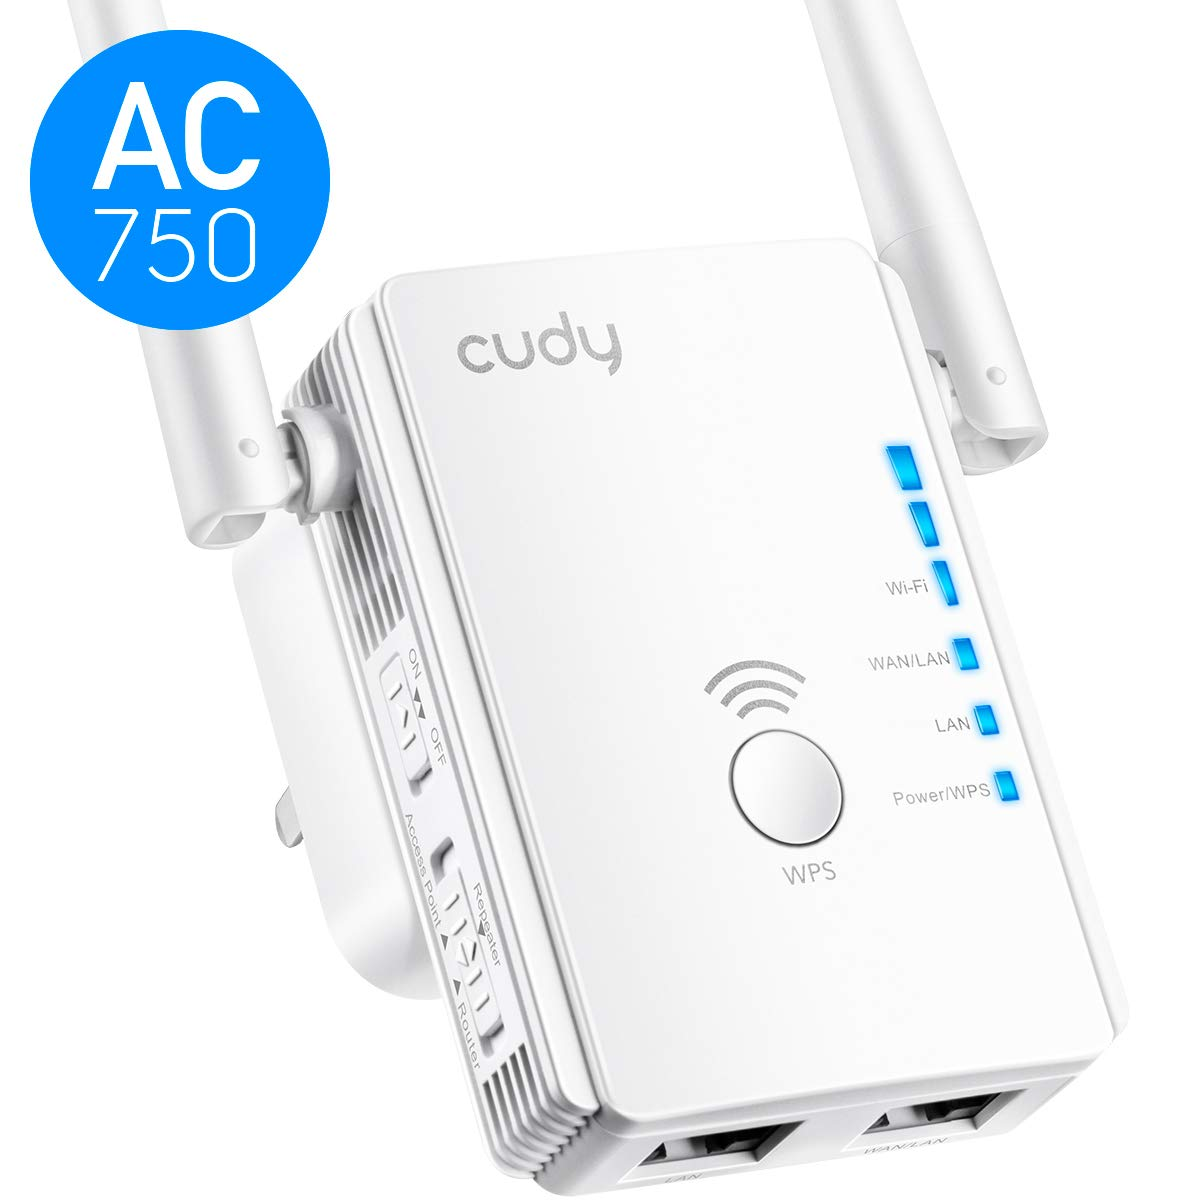 Cudy AC750 Dual Band WiFi Range Extender, 750Mbps WiFi Booster, Access Point Mode, 2 LAN Ports, WPS, Extends 2.4G and 5G WiFi Range to Smart Home & Alexa Devices (RE750) by Cudy